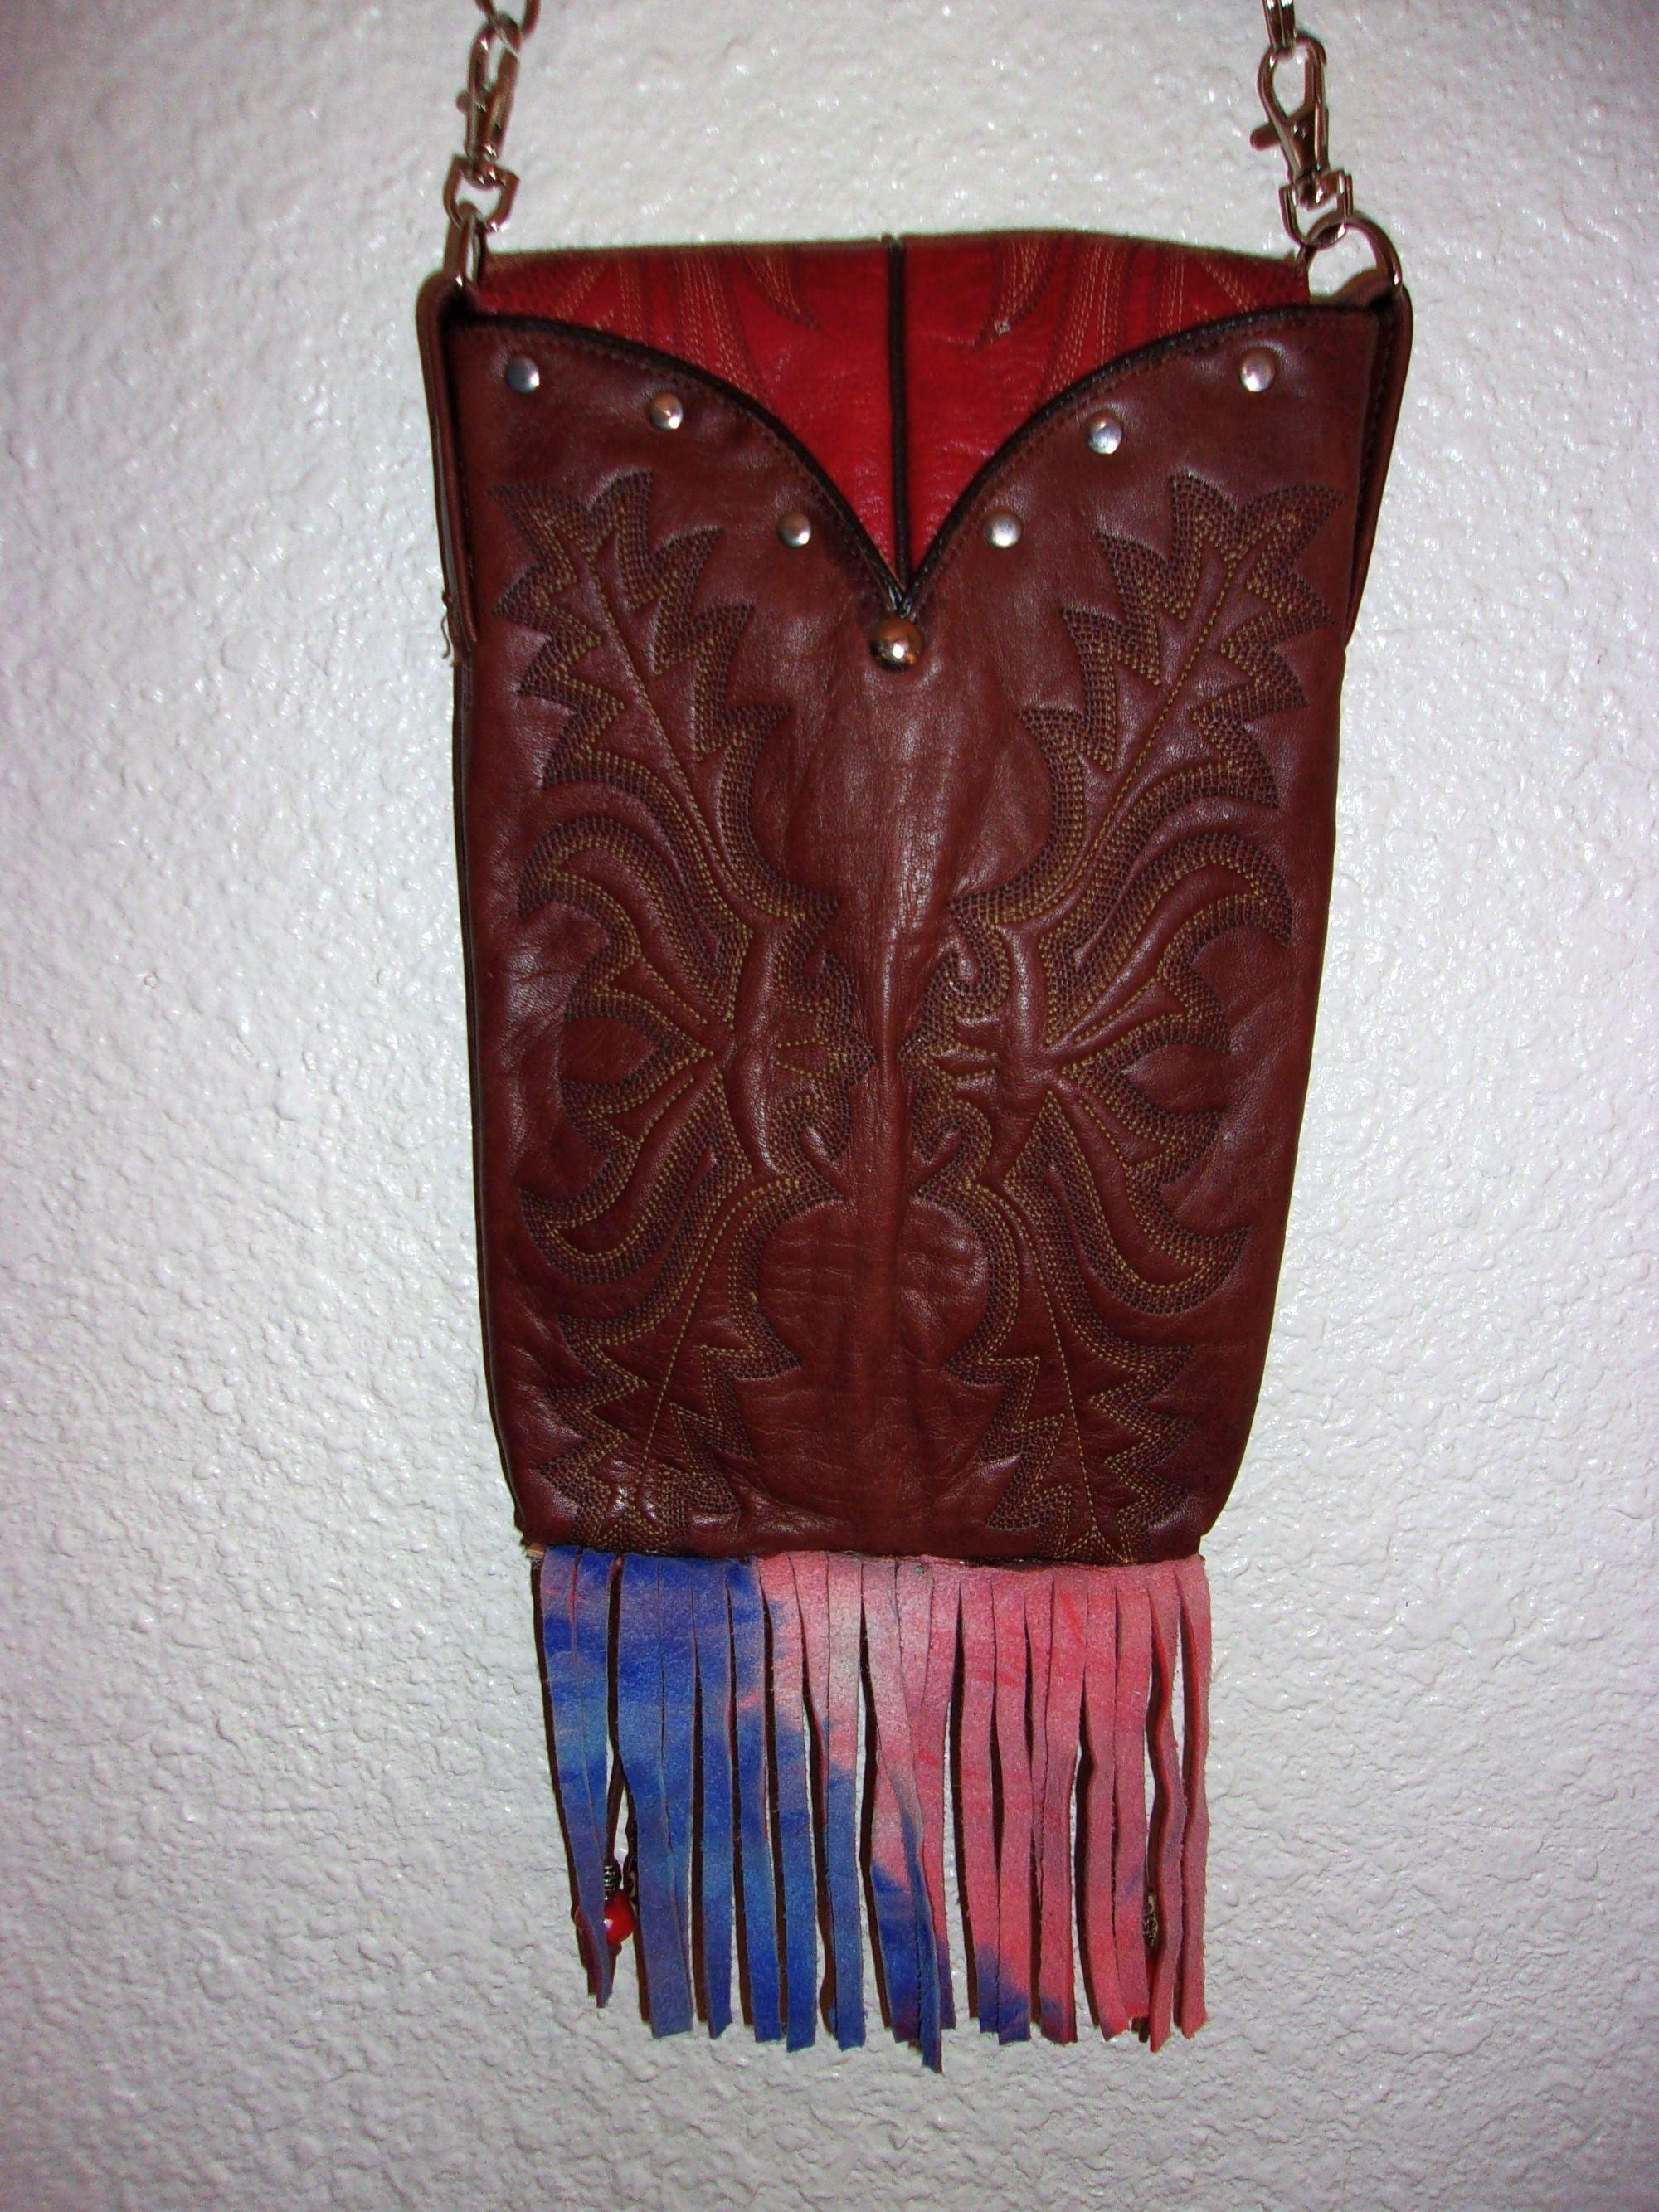 back of one-of-a-kind red leather crossbody messenger bag handcrafted from cowboy boots